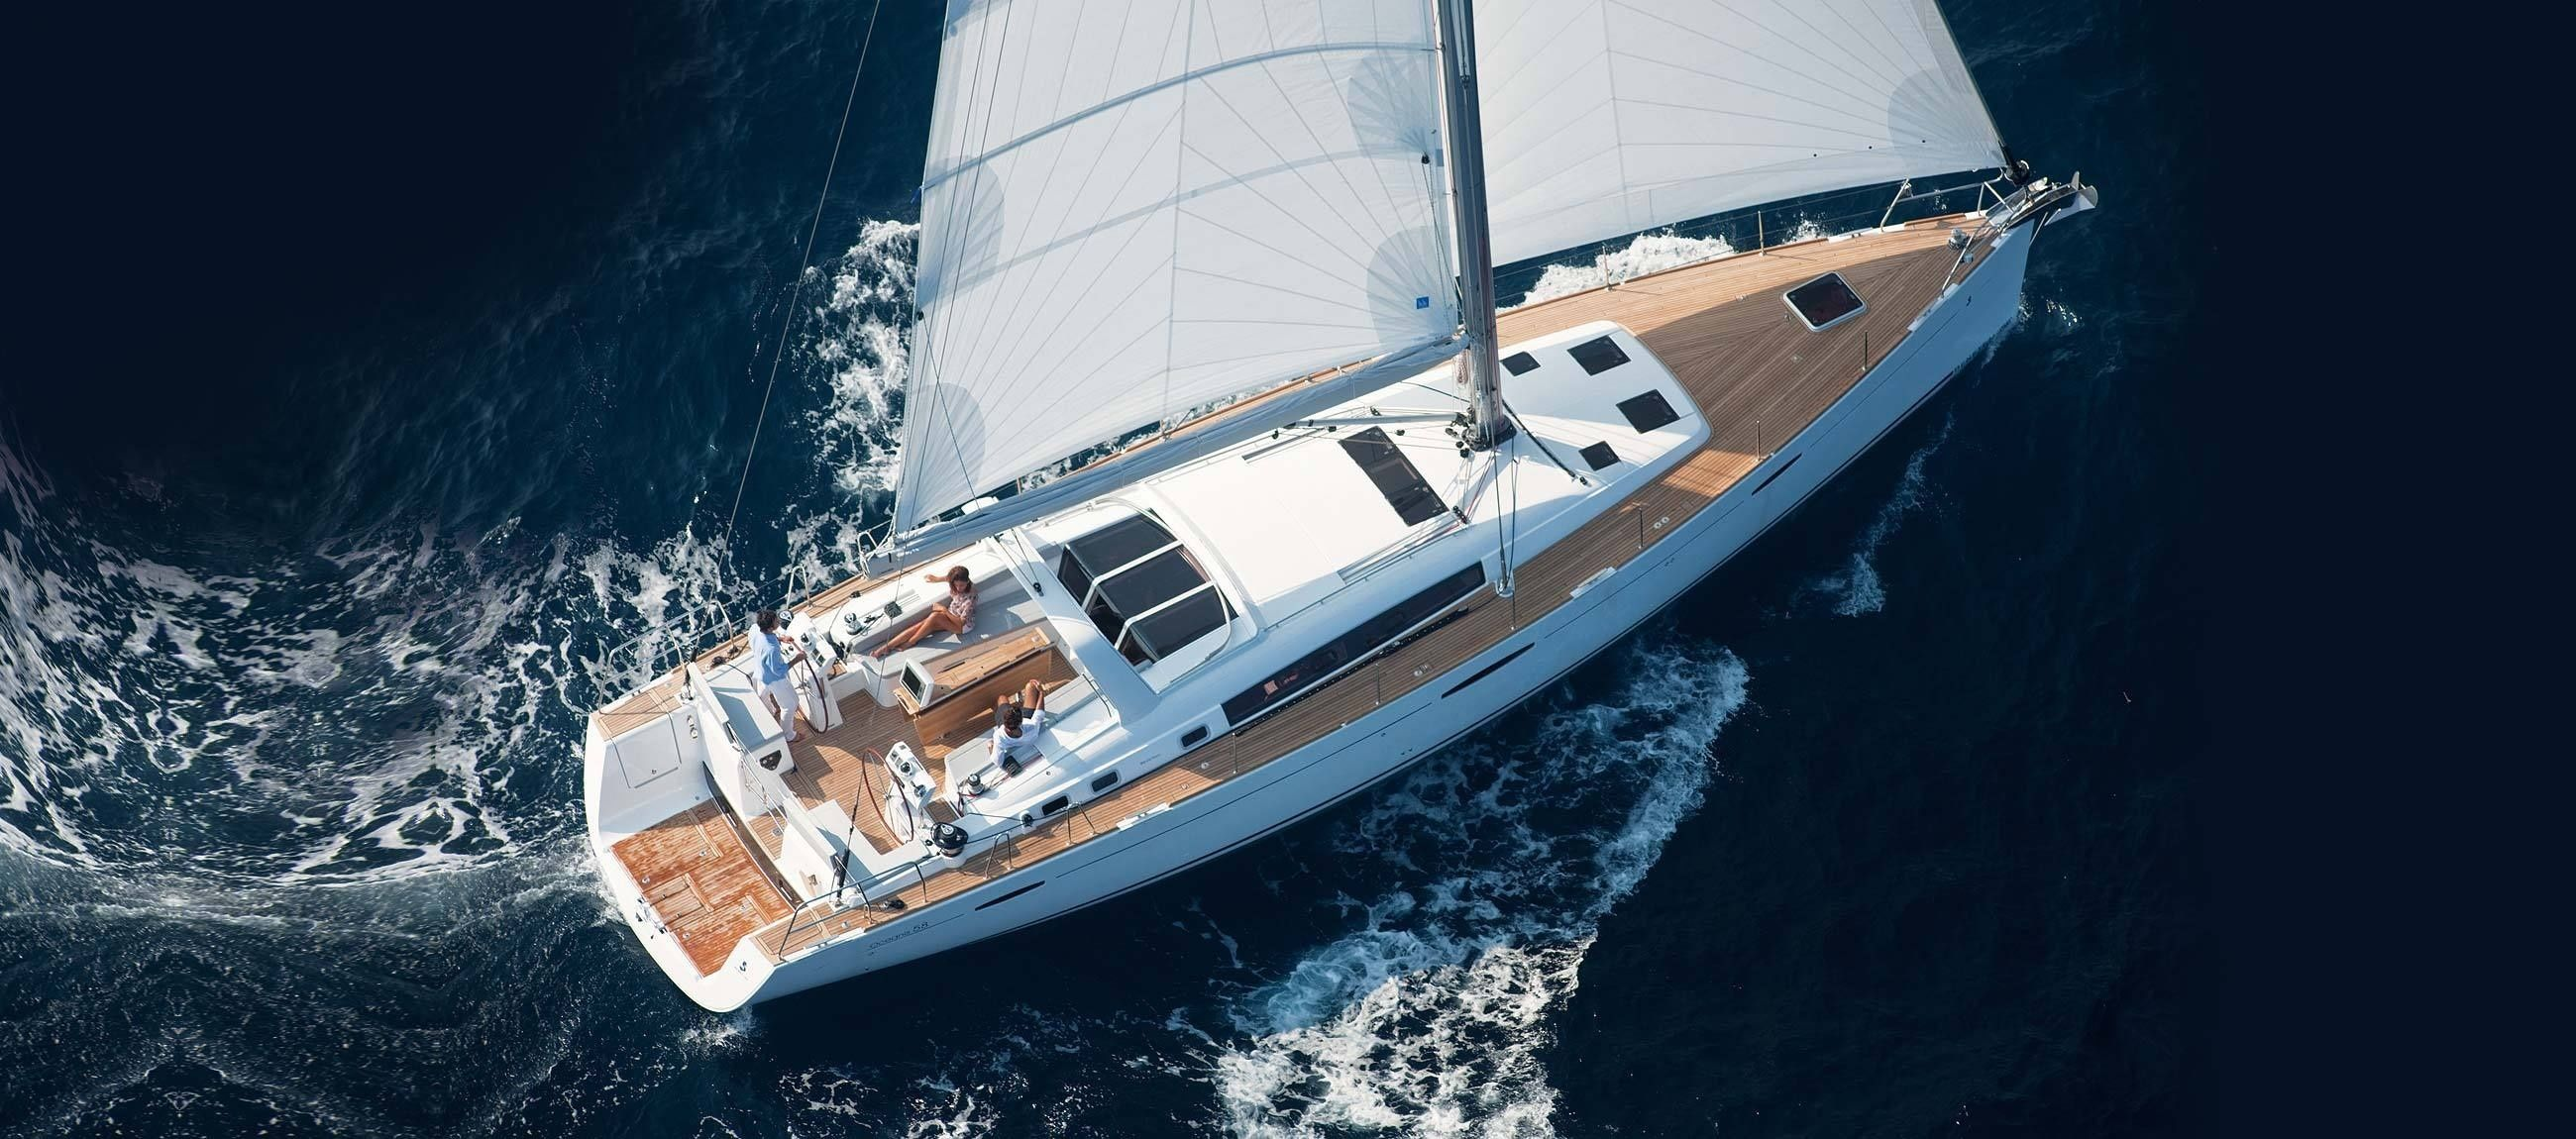 Luxury Sailing Yachts Wallpaper With Images Luxury Sailing